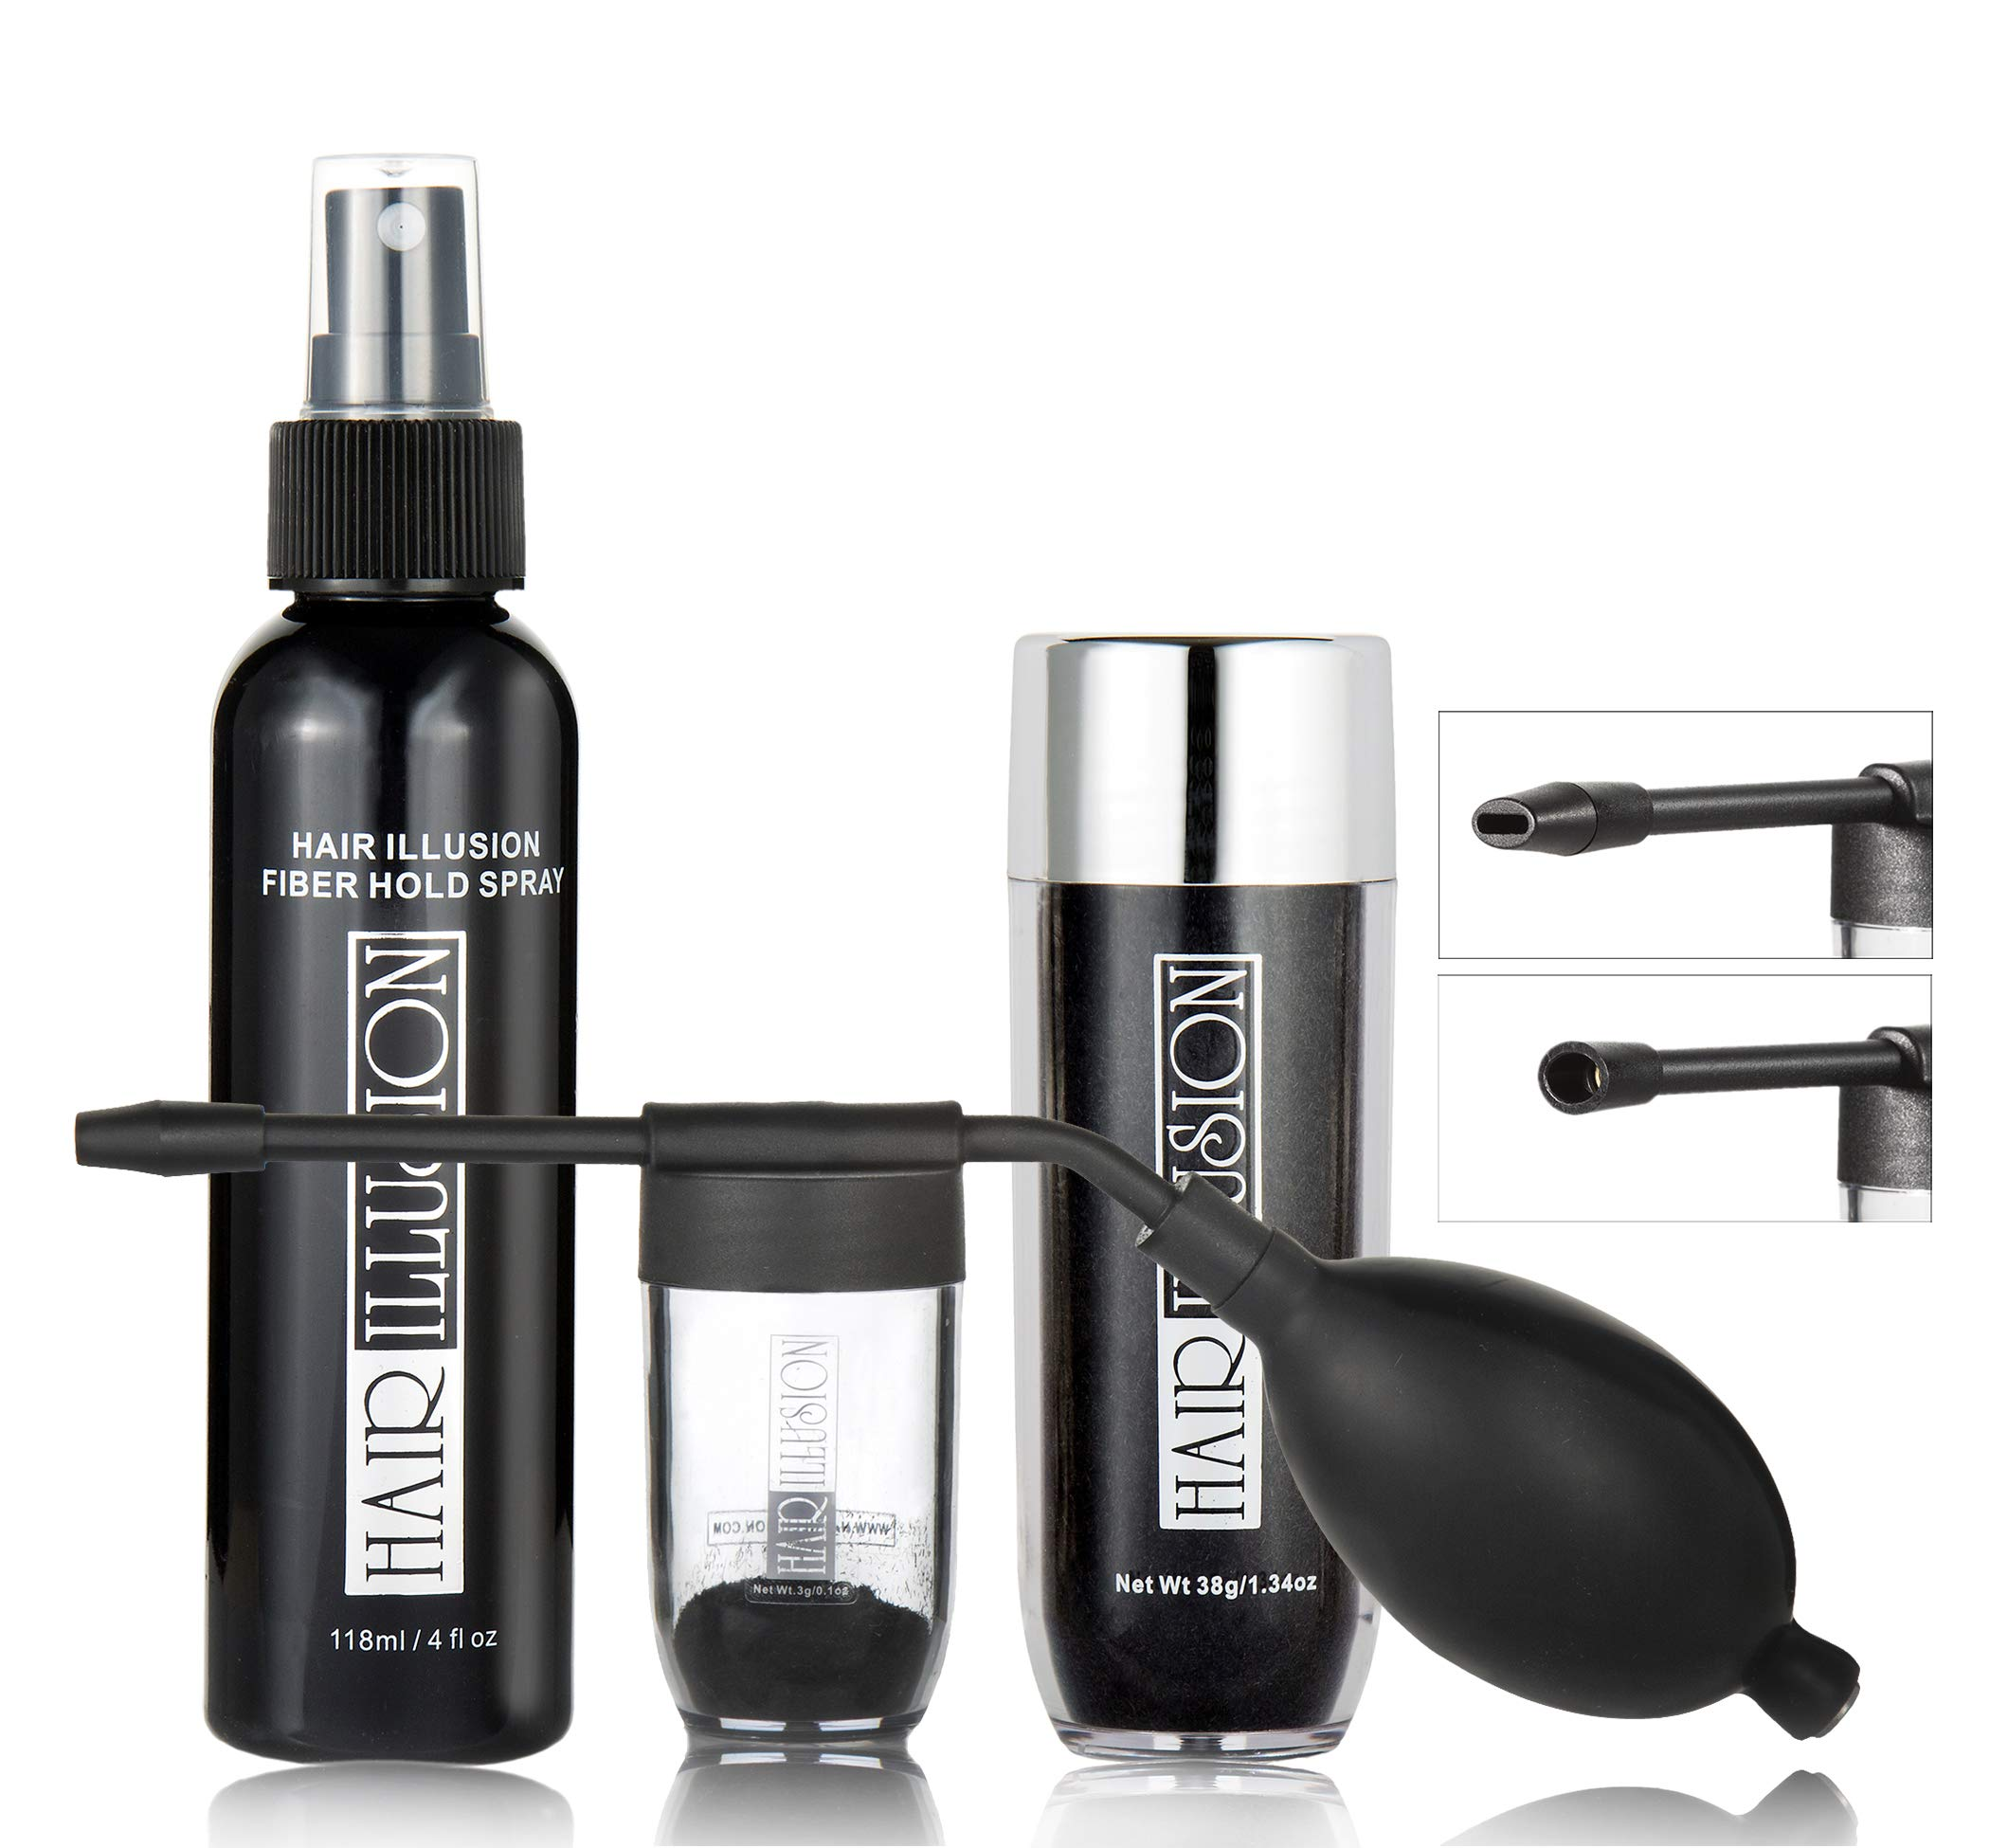 Hair illusion Combo pack kit Inc. 38g Black Fibers, Applicator, Holding Spray